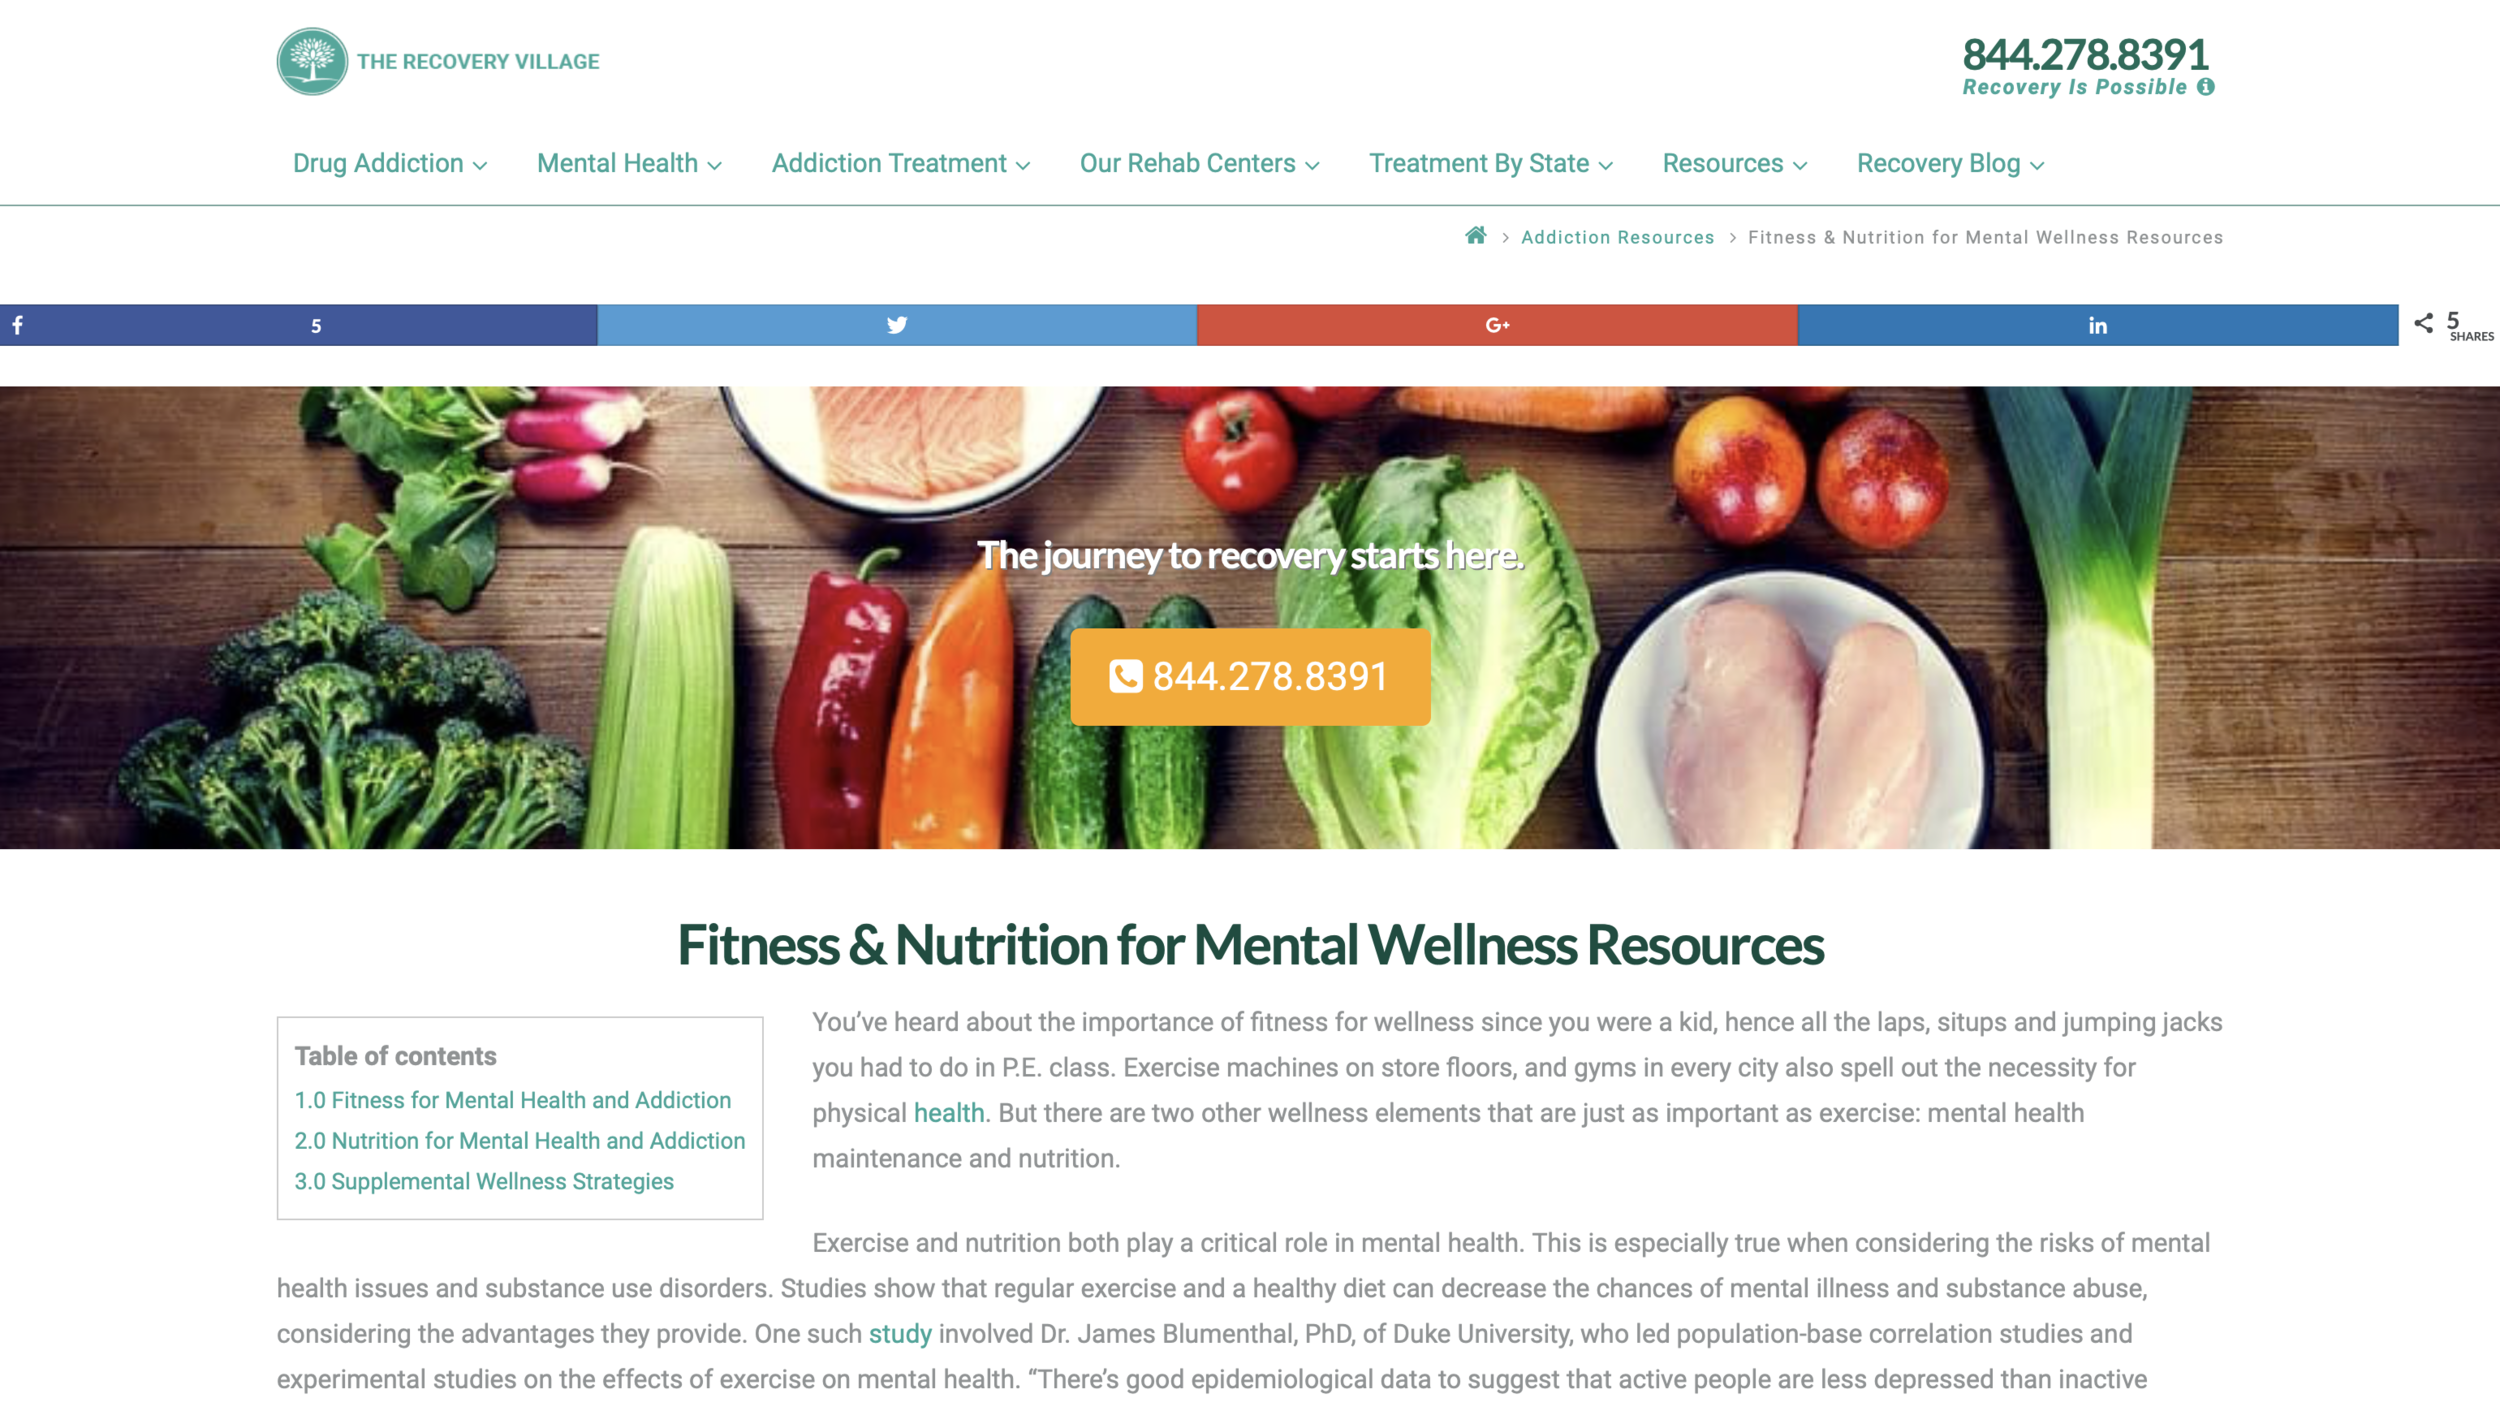 Fitness & Nutrition Resources for Addiction , via @ The Recovery Village